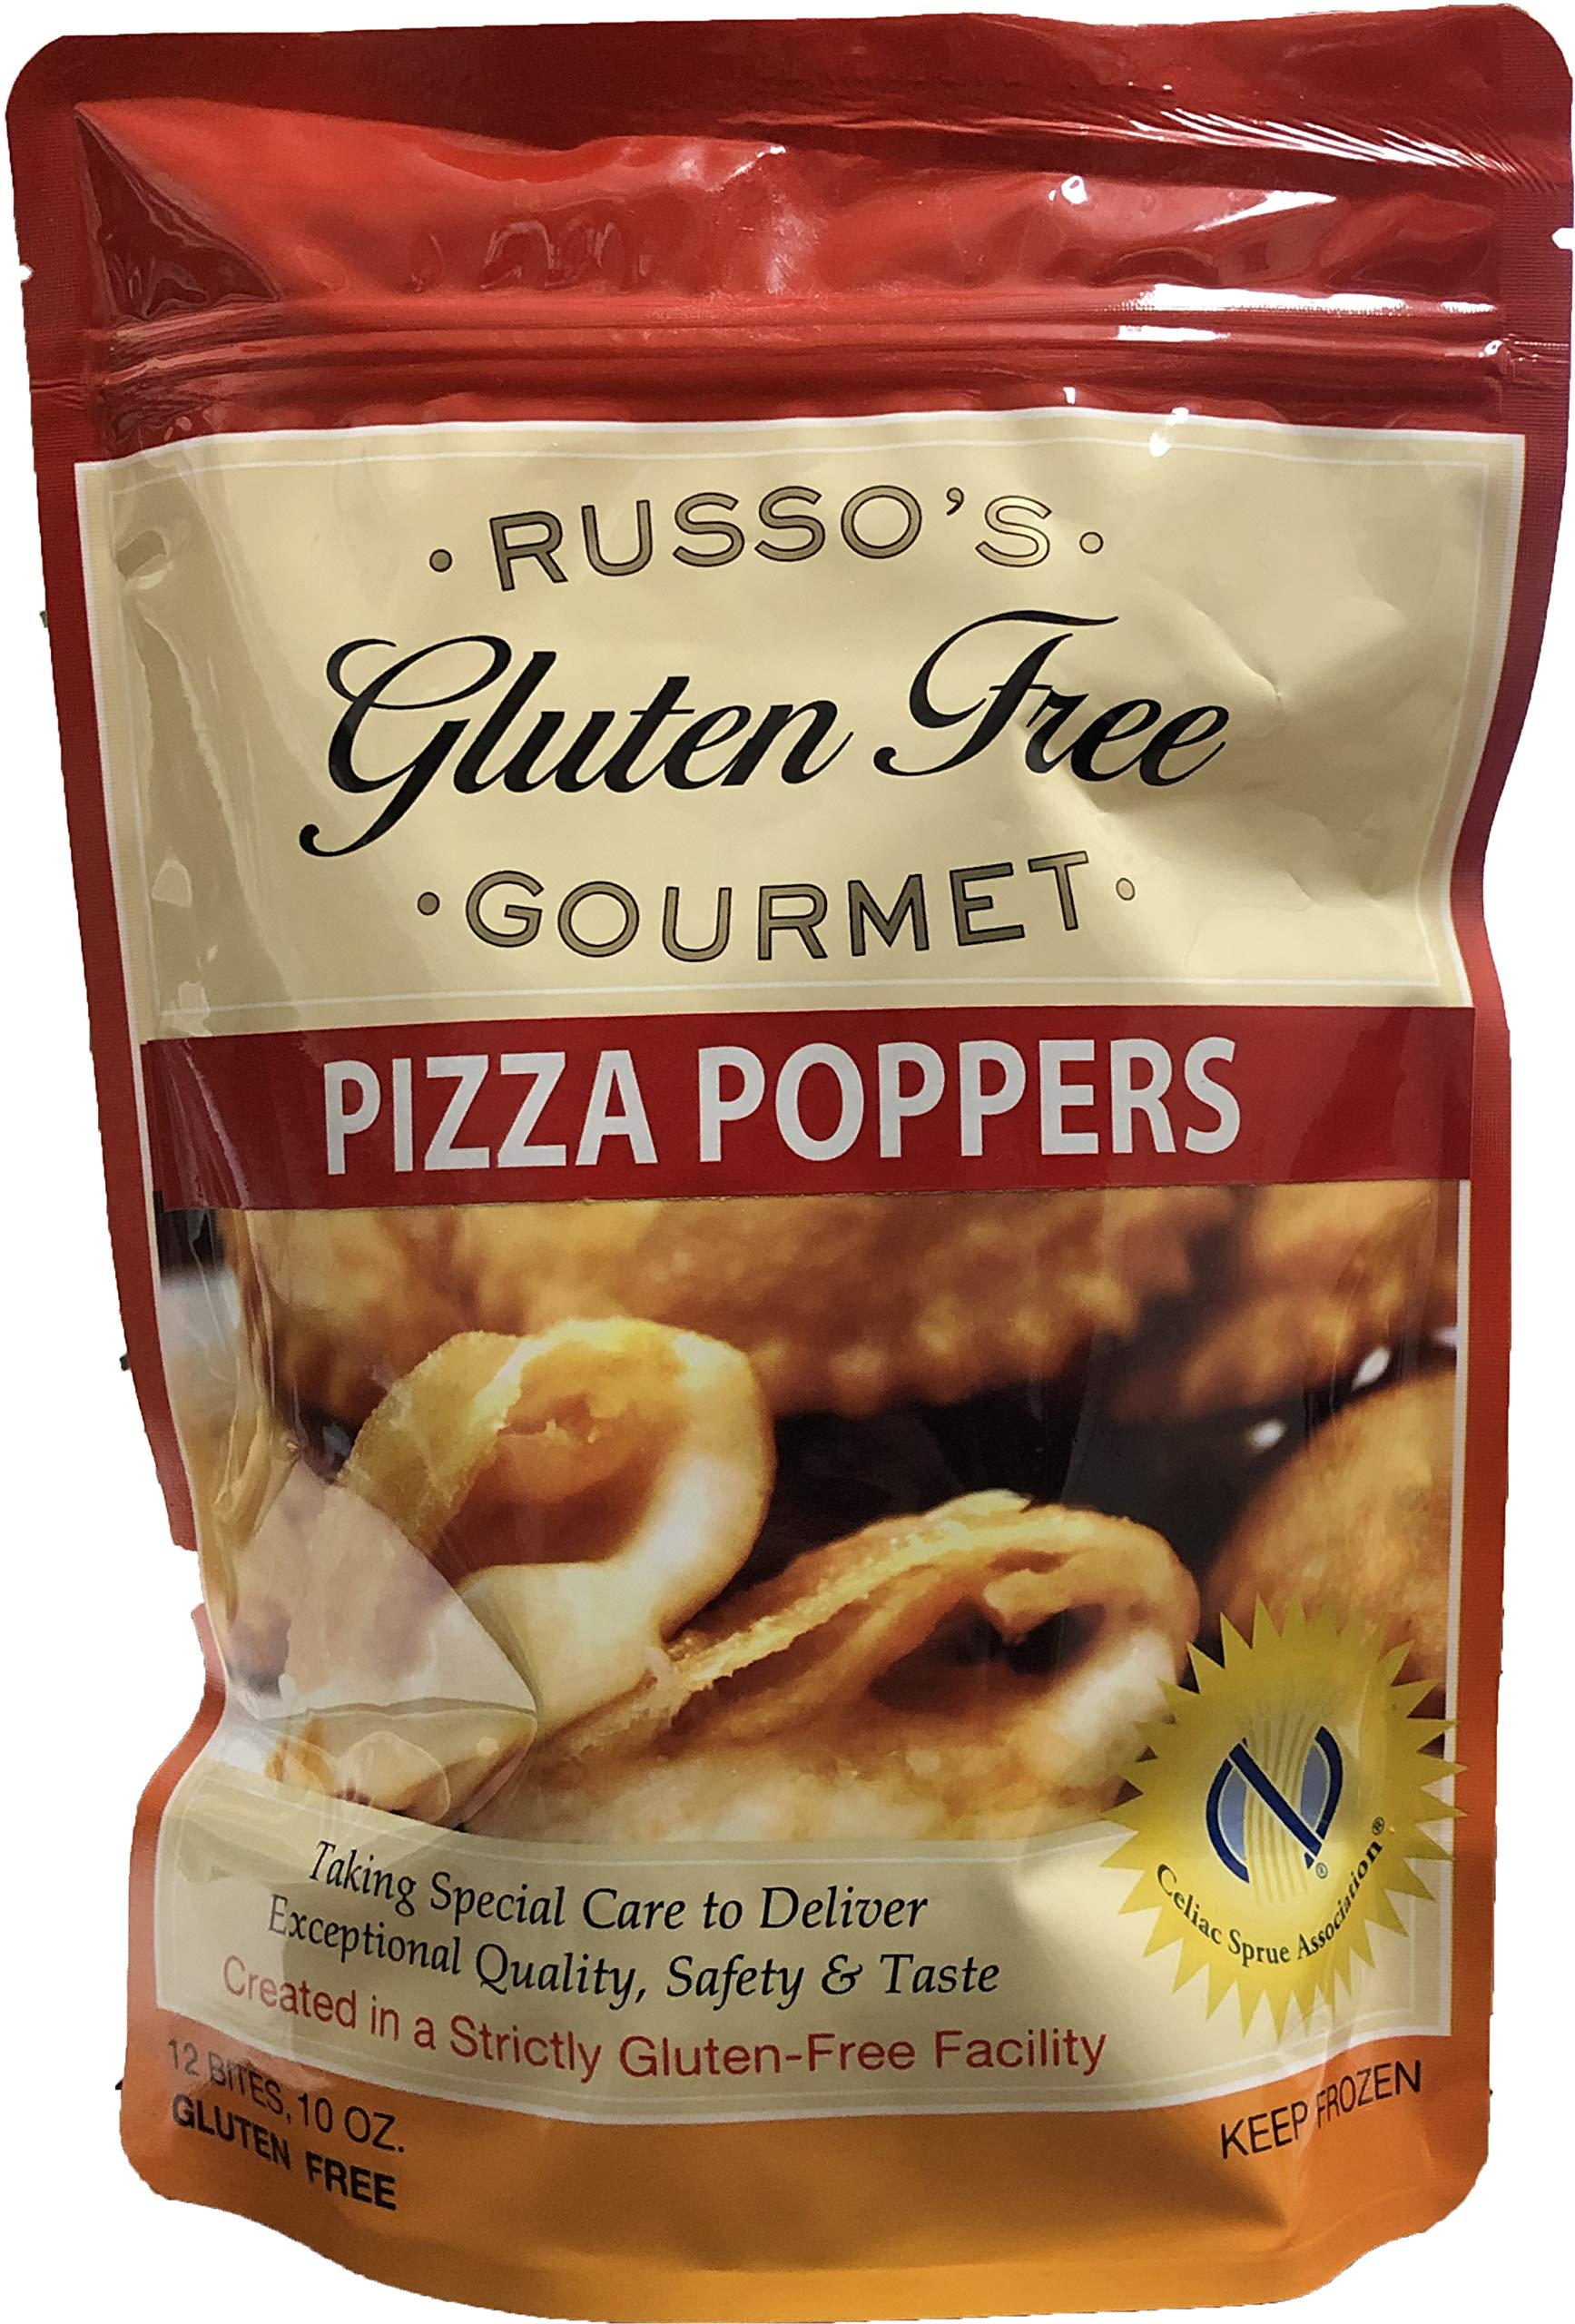 Russo's Gluten Free Pizza Popper 10oz, (Pack of 3) The Best Tasting Pizza Poppers in Market w/Fresh Mozzarella Cheese wrapped - Frozen Appetizers,Bite Size Cheese Pizza NYC Style,Home Made Hot Popper by Russo's Gluten Free Gourmet